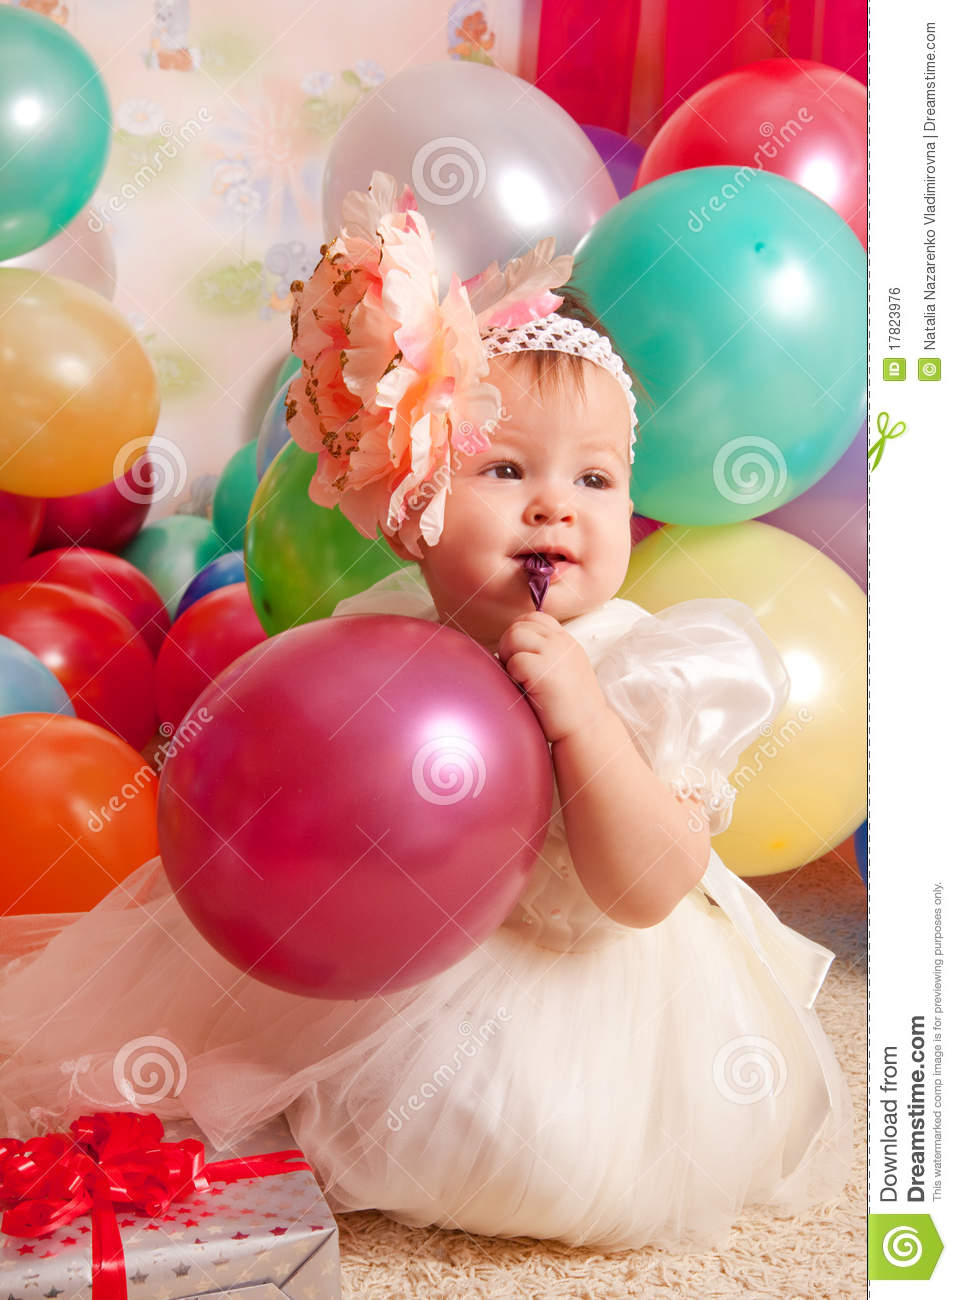 Birthday Baby Stock Images